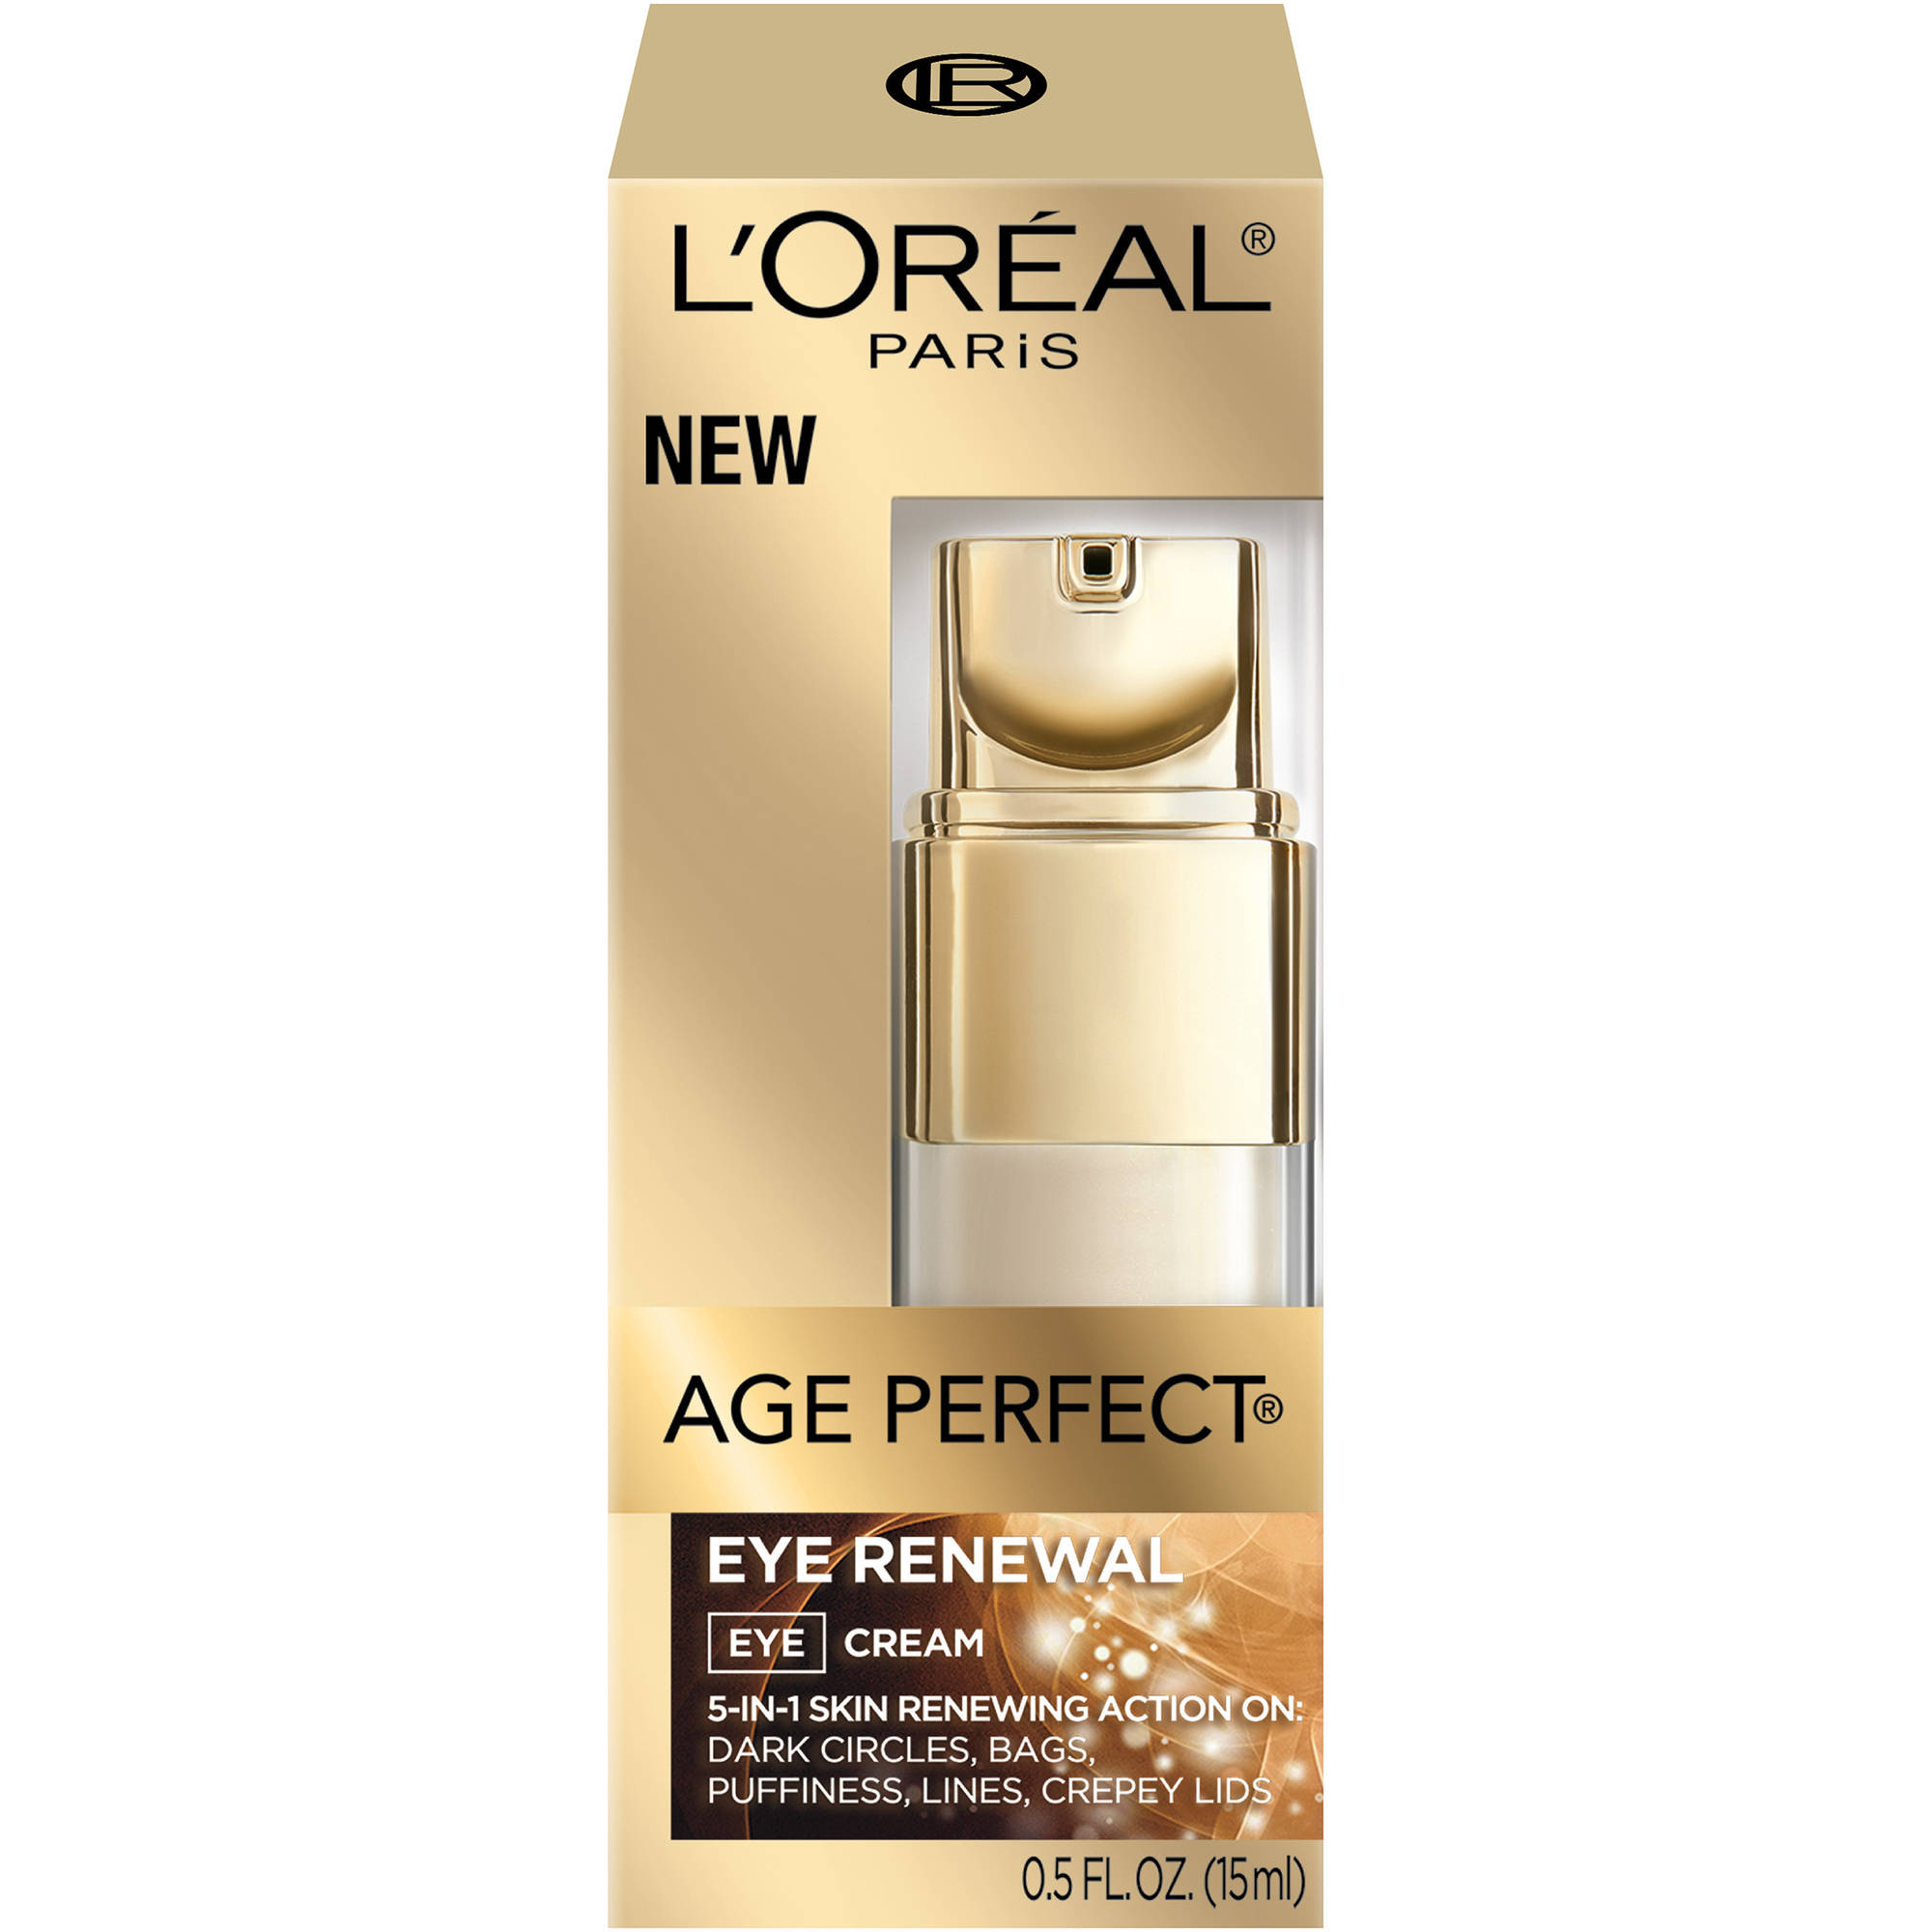 L'Oreal Paris Age Perfect Eye Renewal Cream, 0.5 fl oz